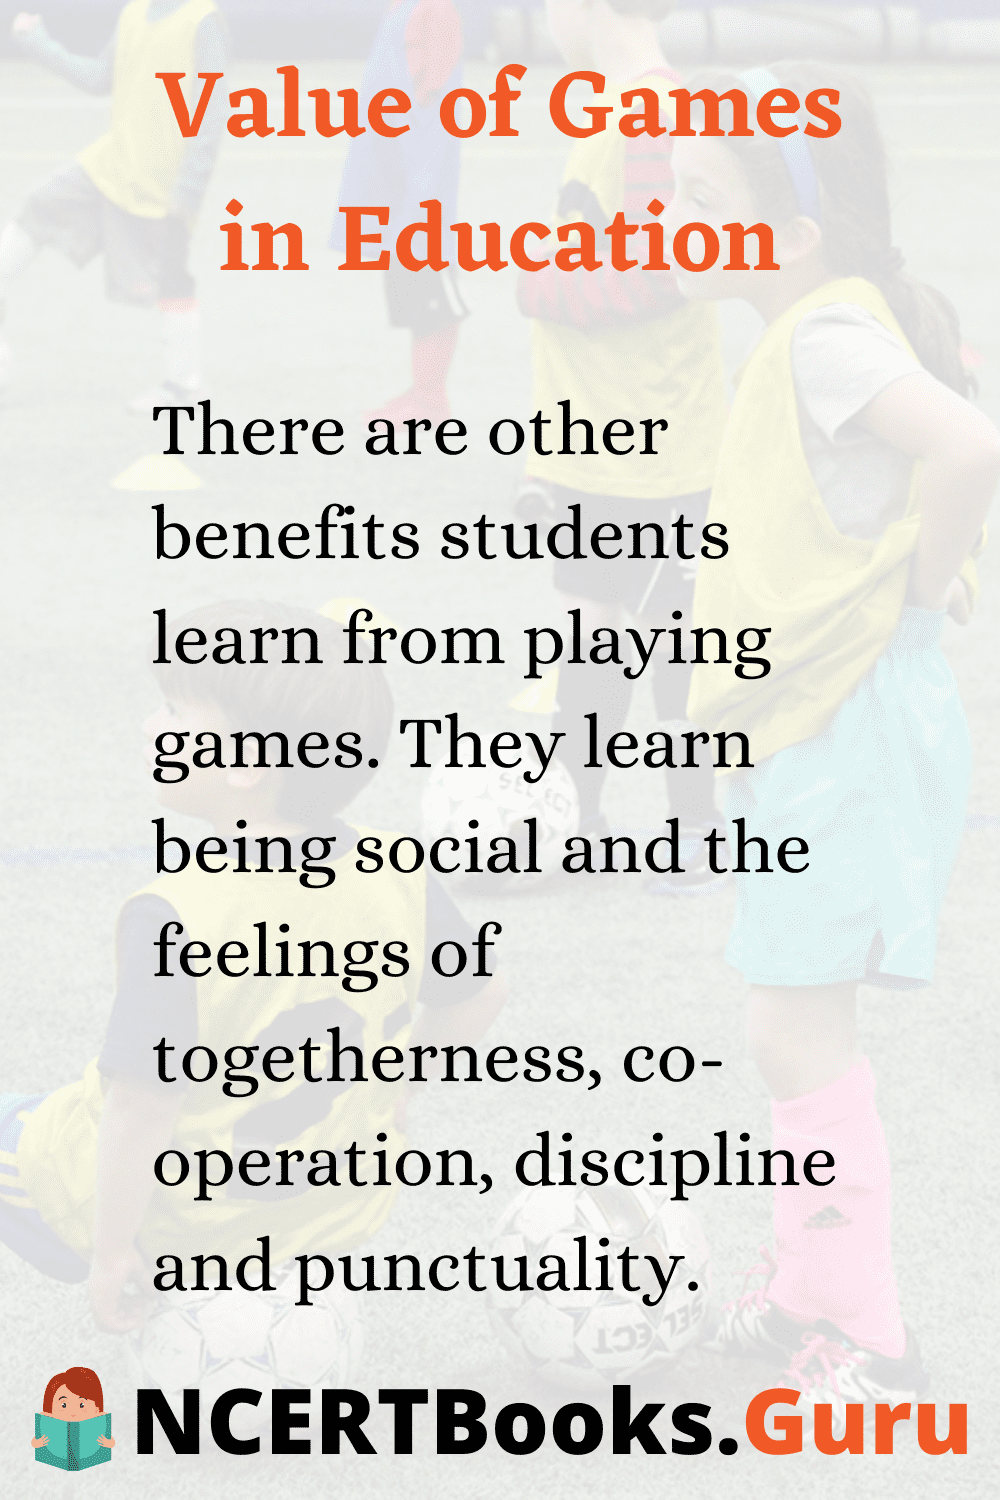 Benefits of Games in Education